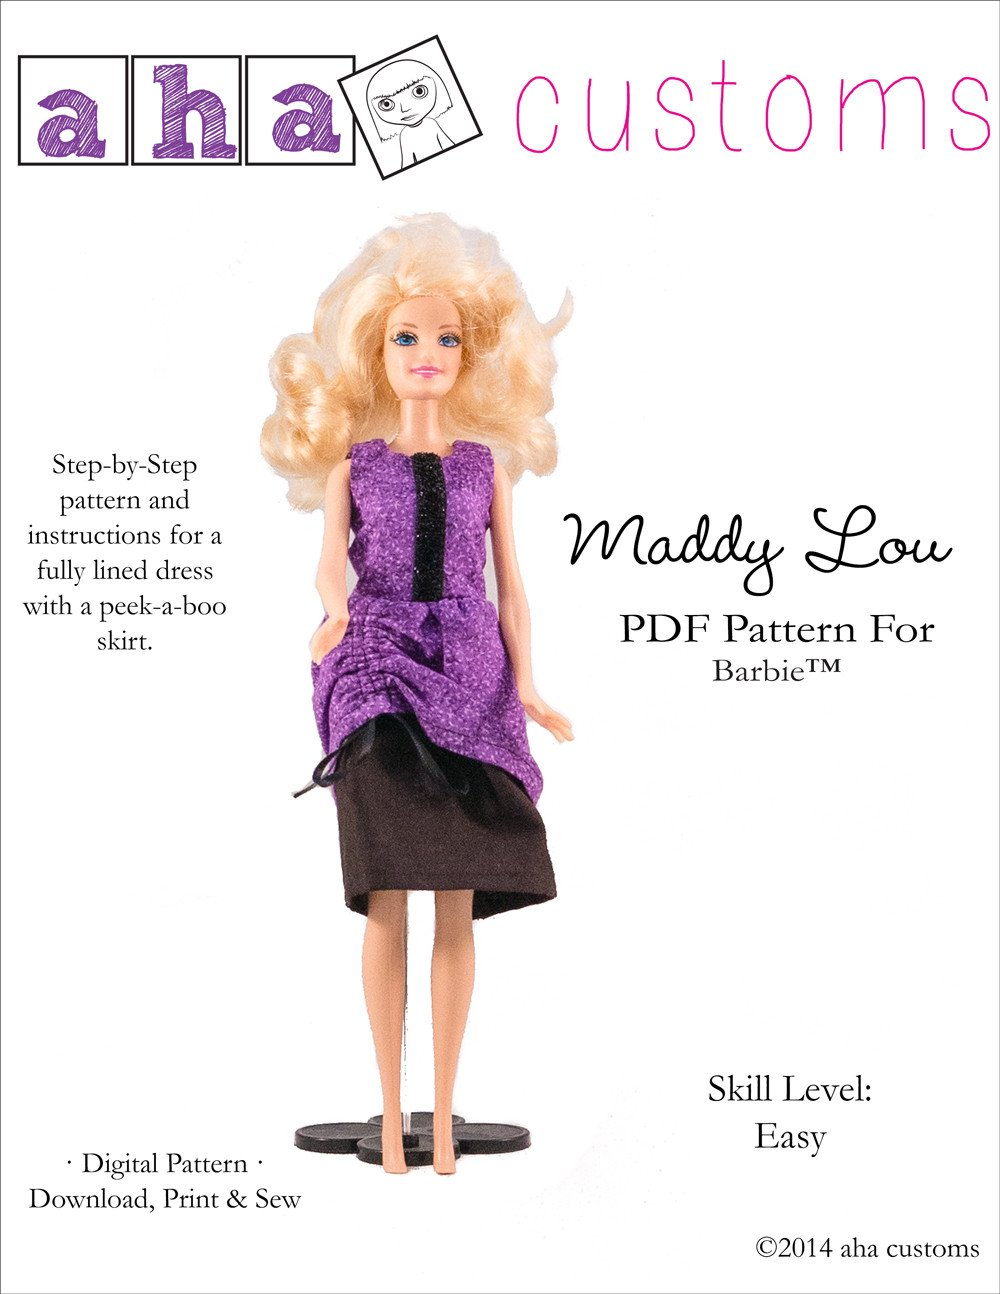 How to crochet a ballerina tutu to fit a barbie size doll my.